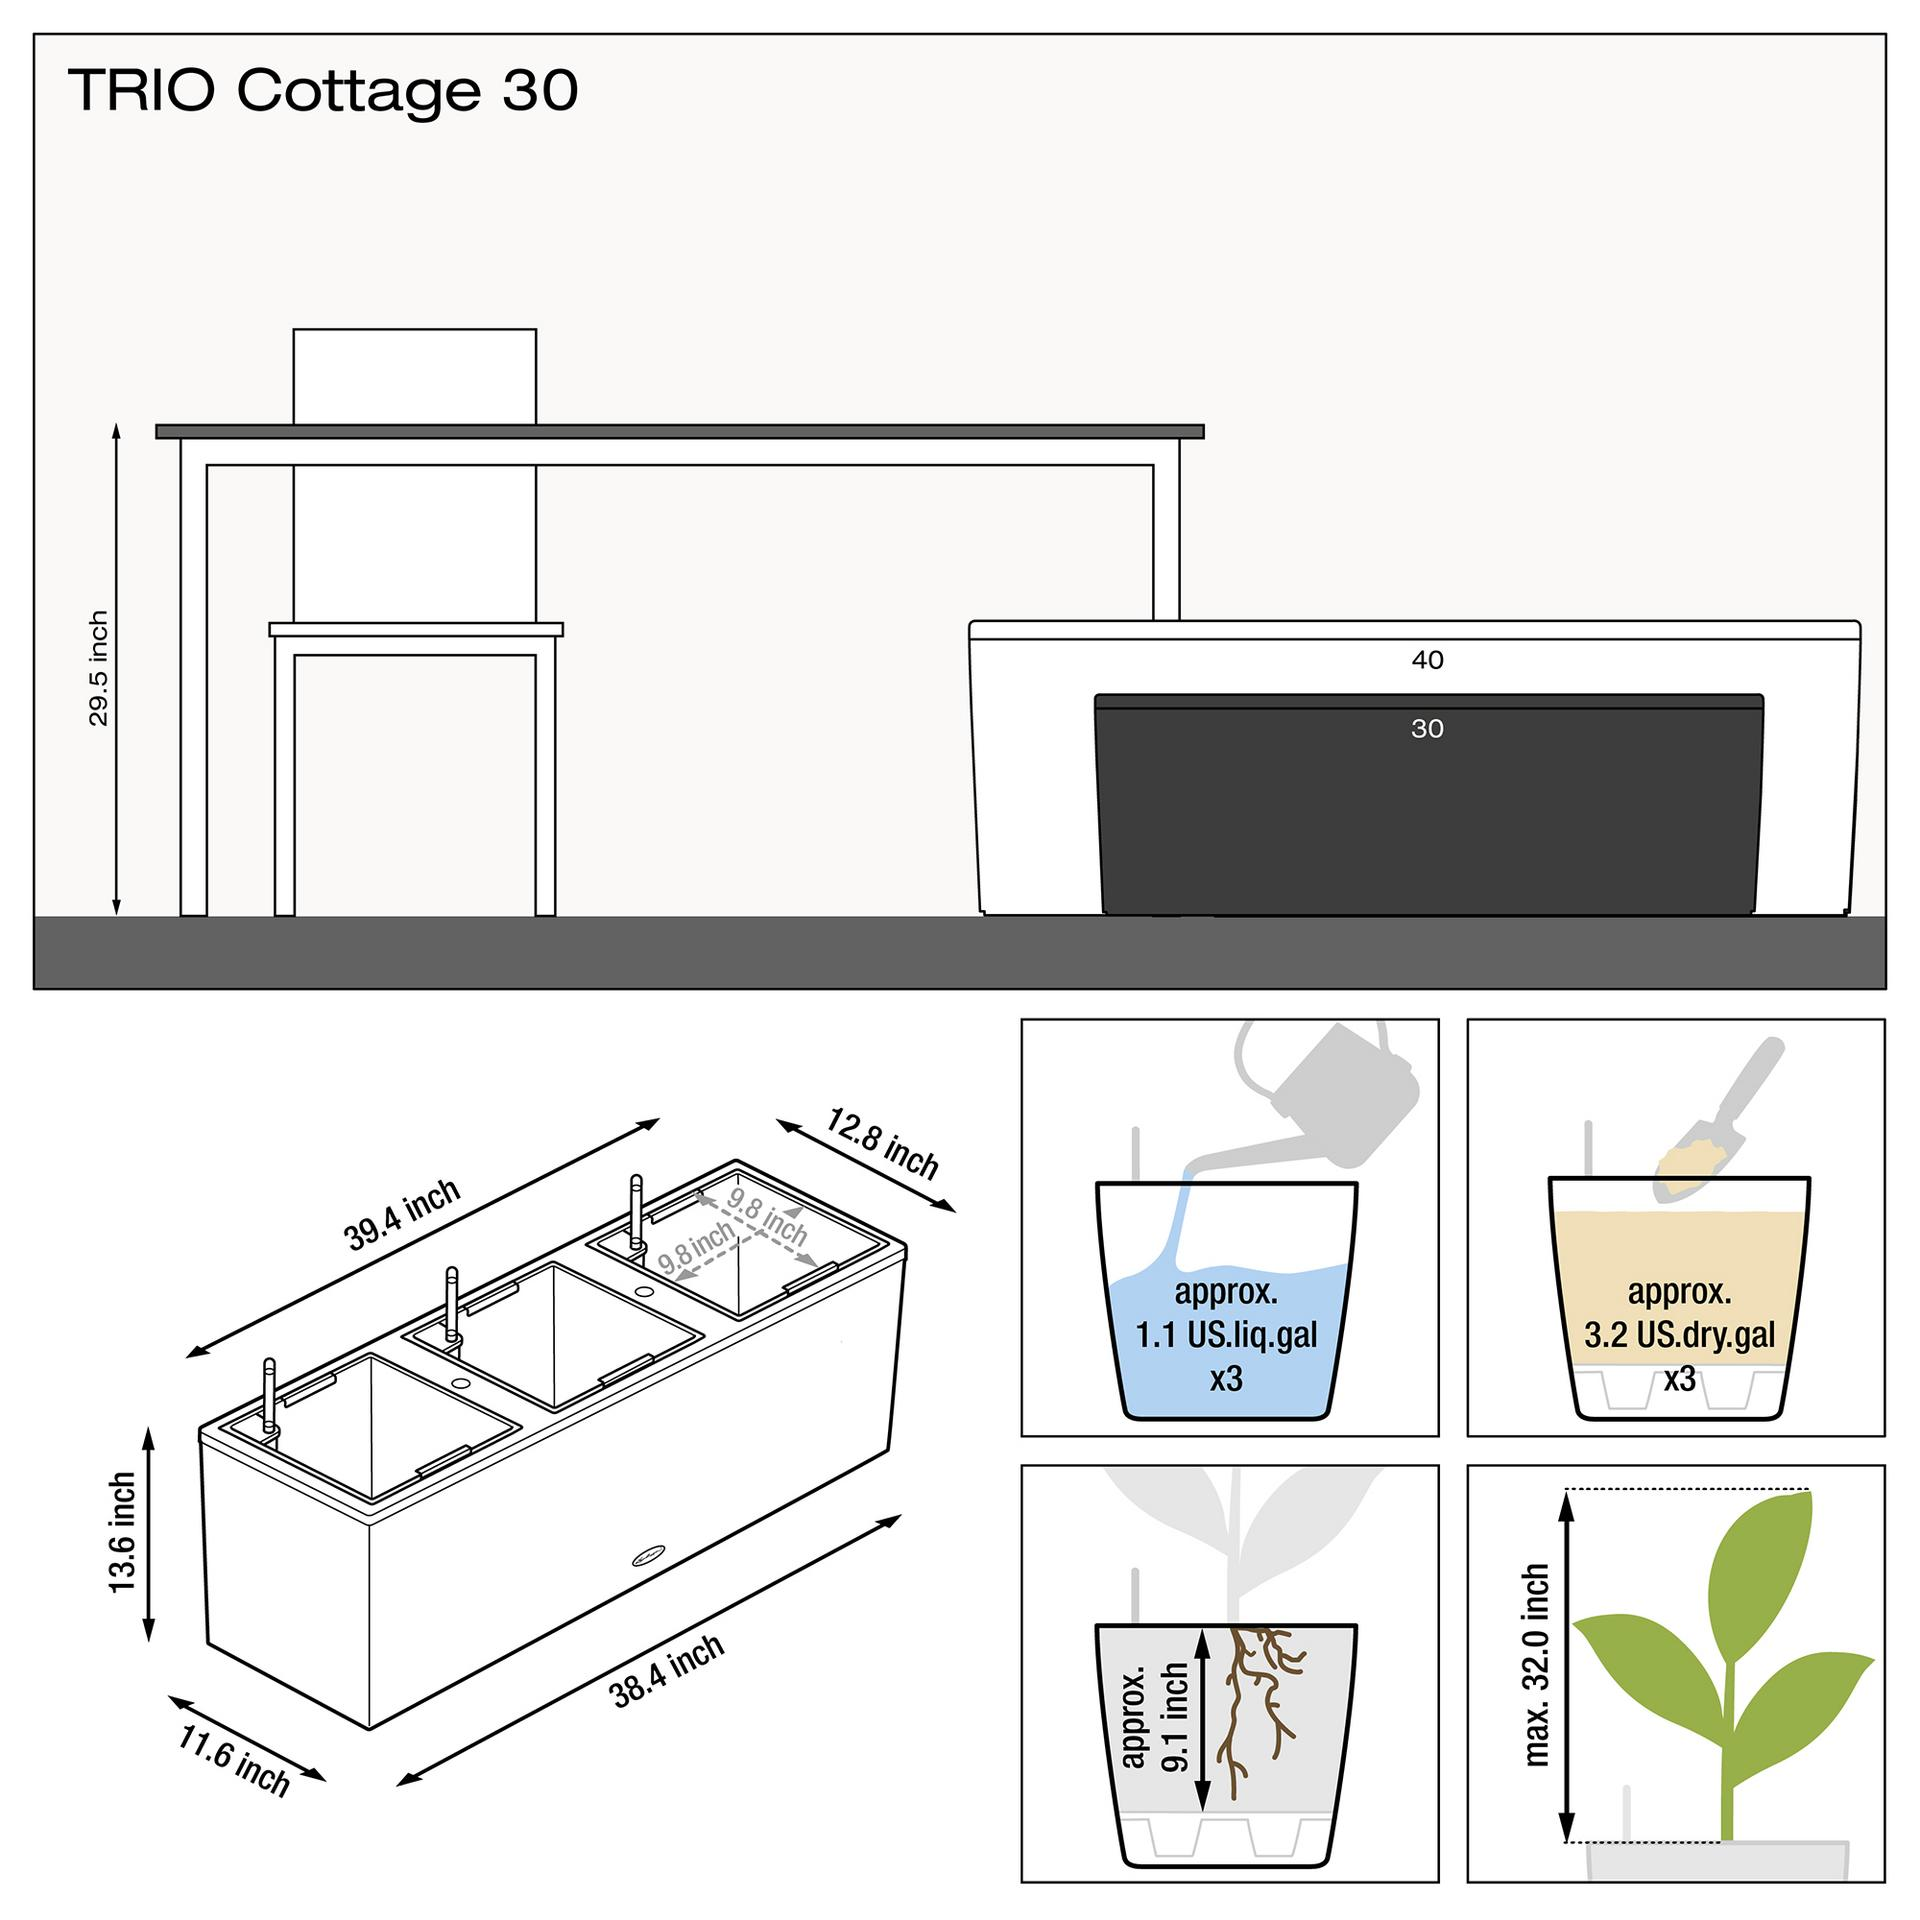 le_trio-cottage30_product_addi_nz_us